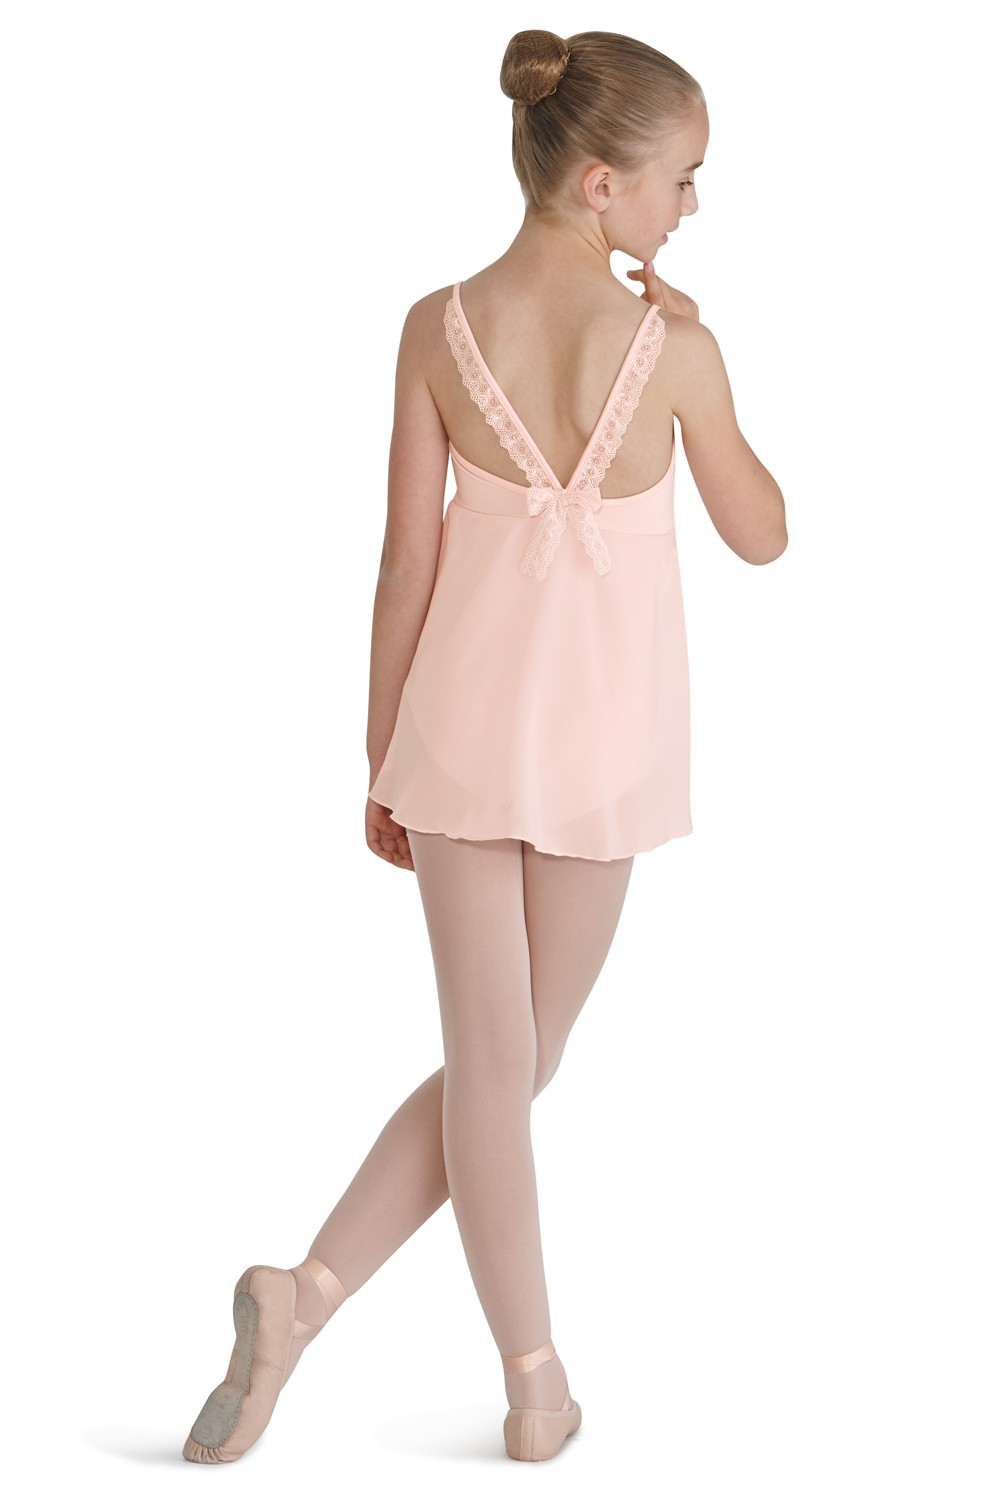 Empire Waist Dress Children's Dance Leotards